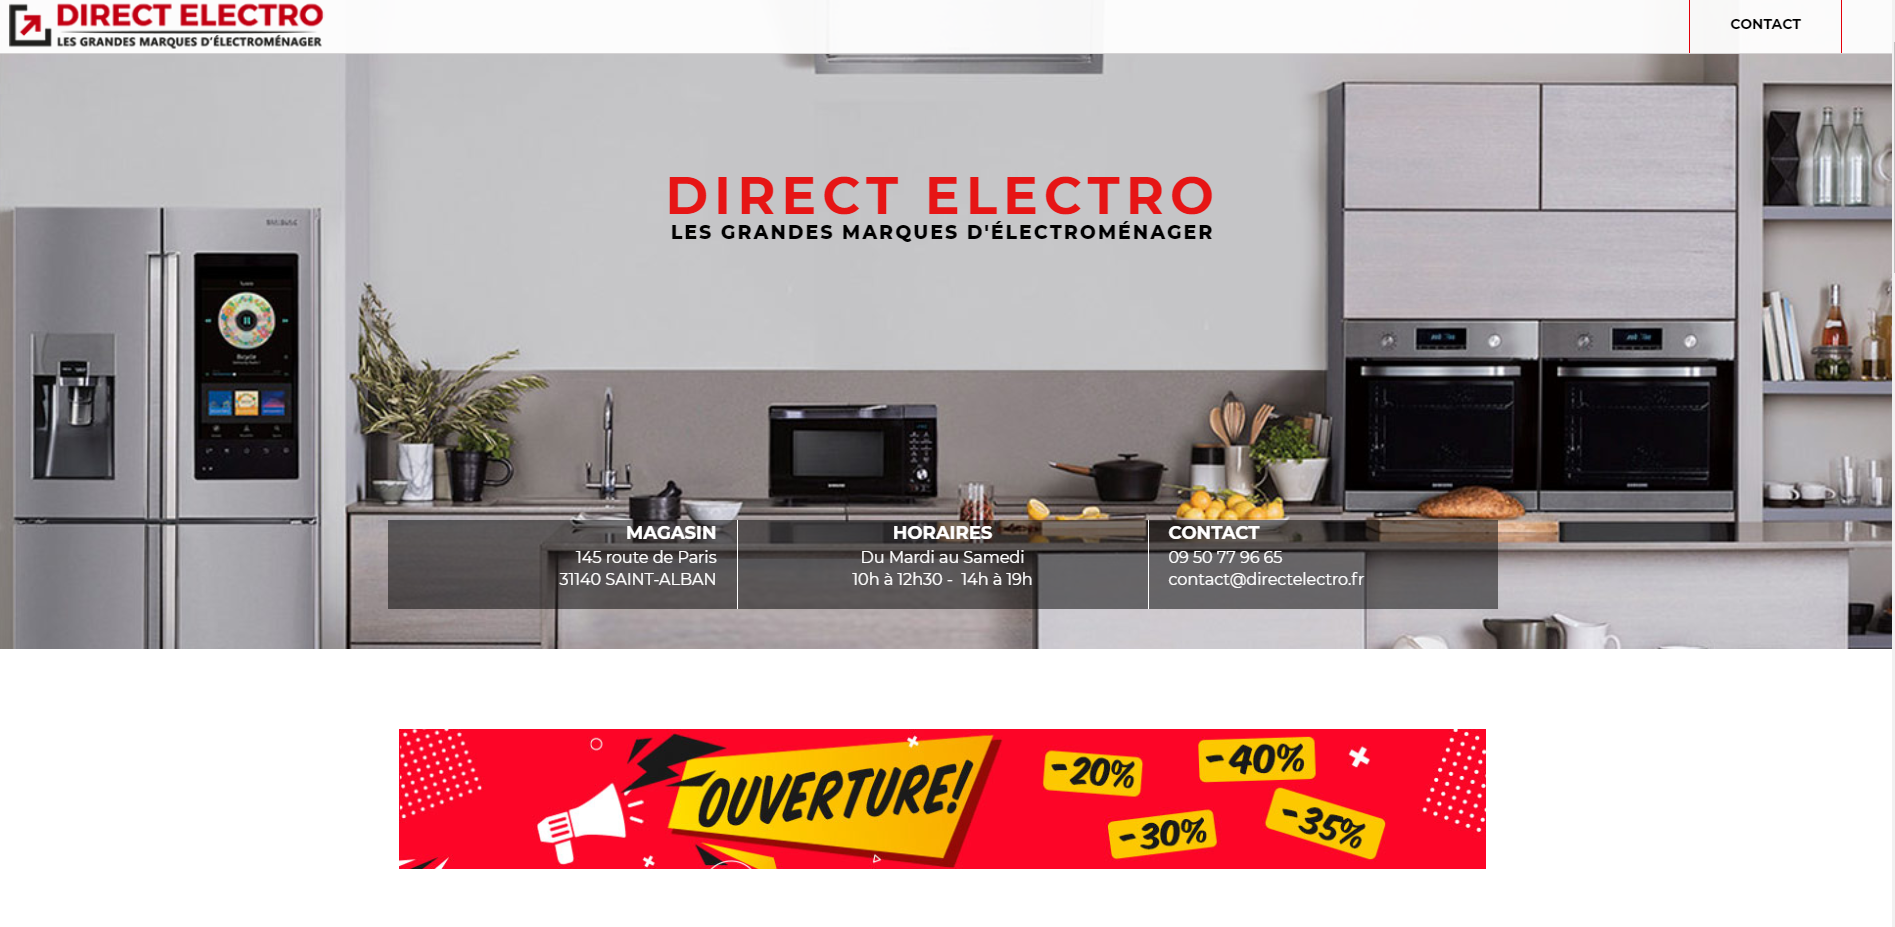 Direct Electro